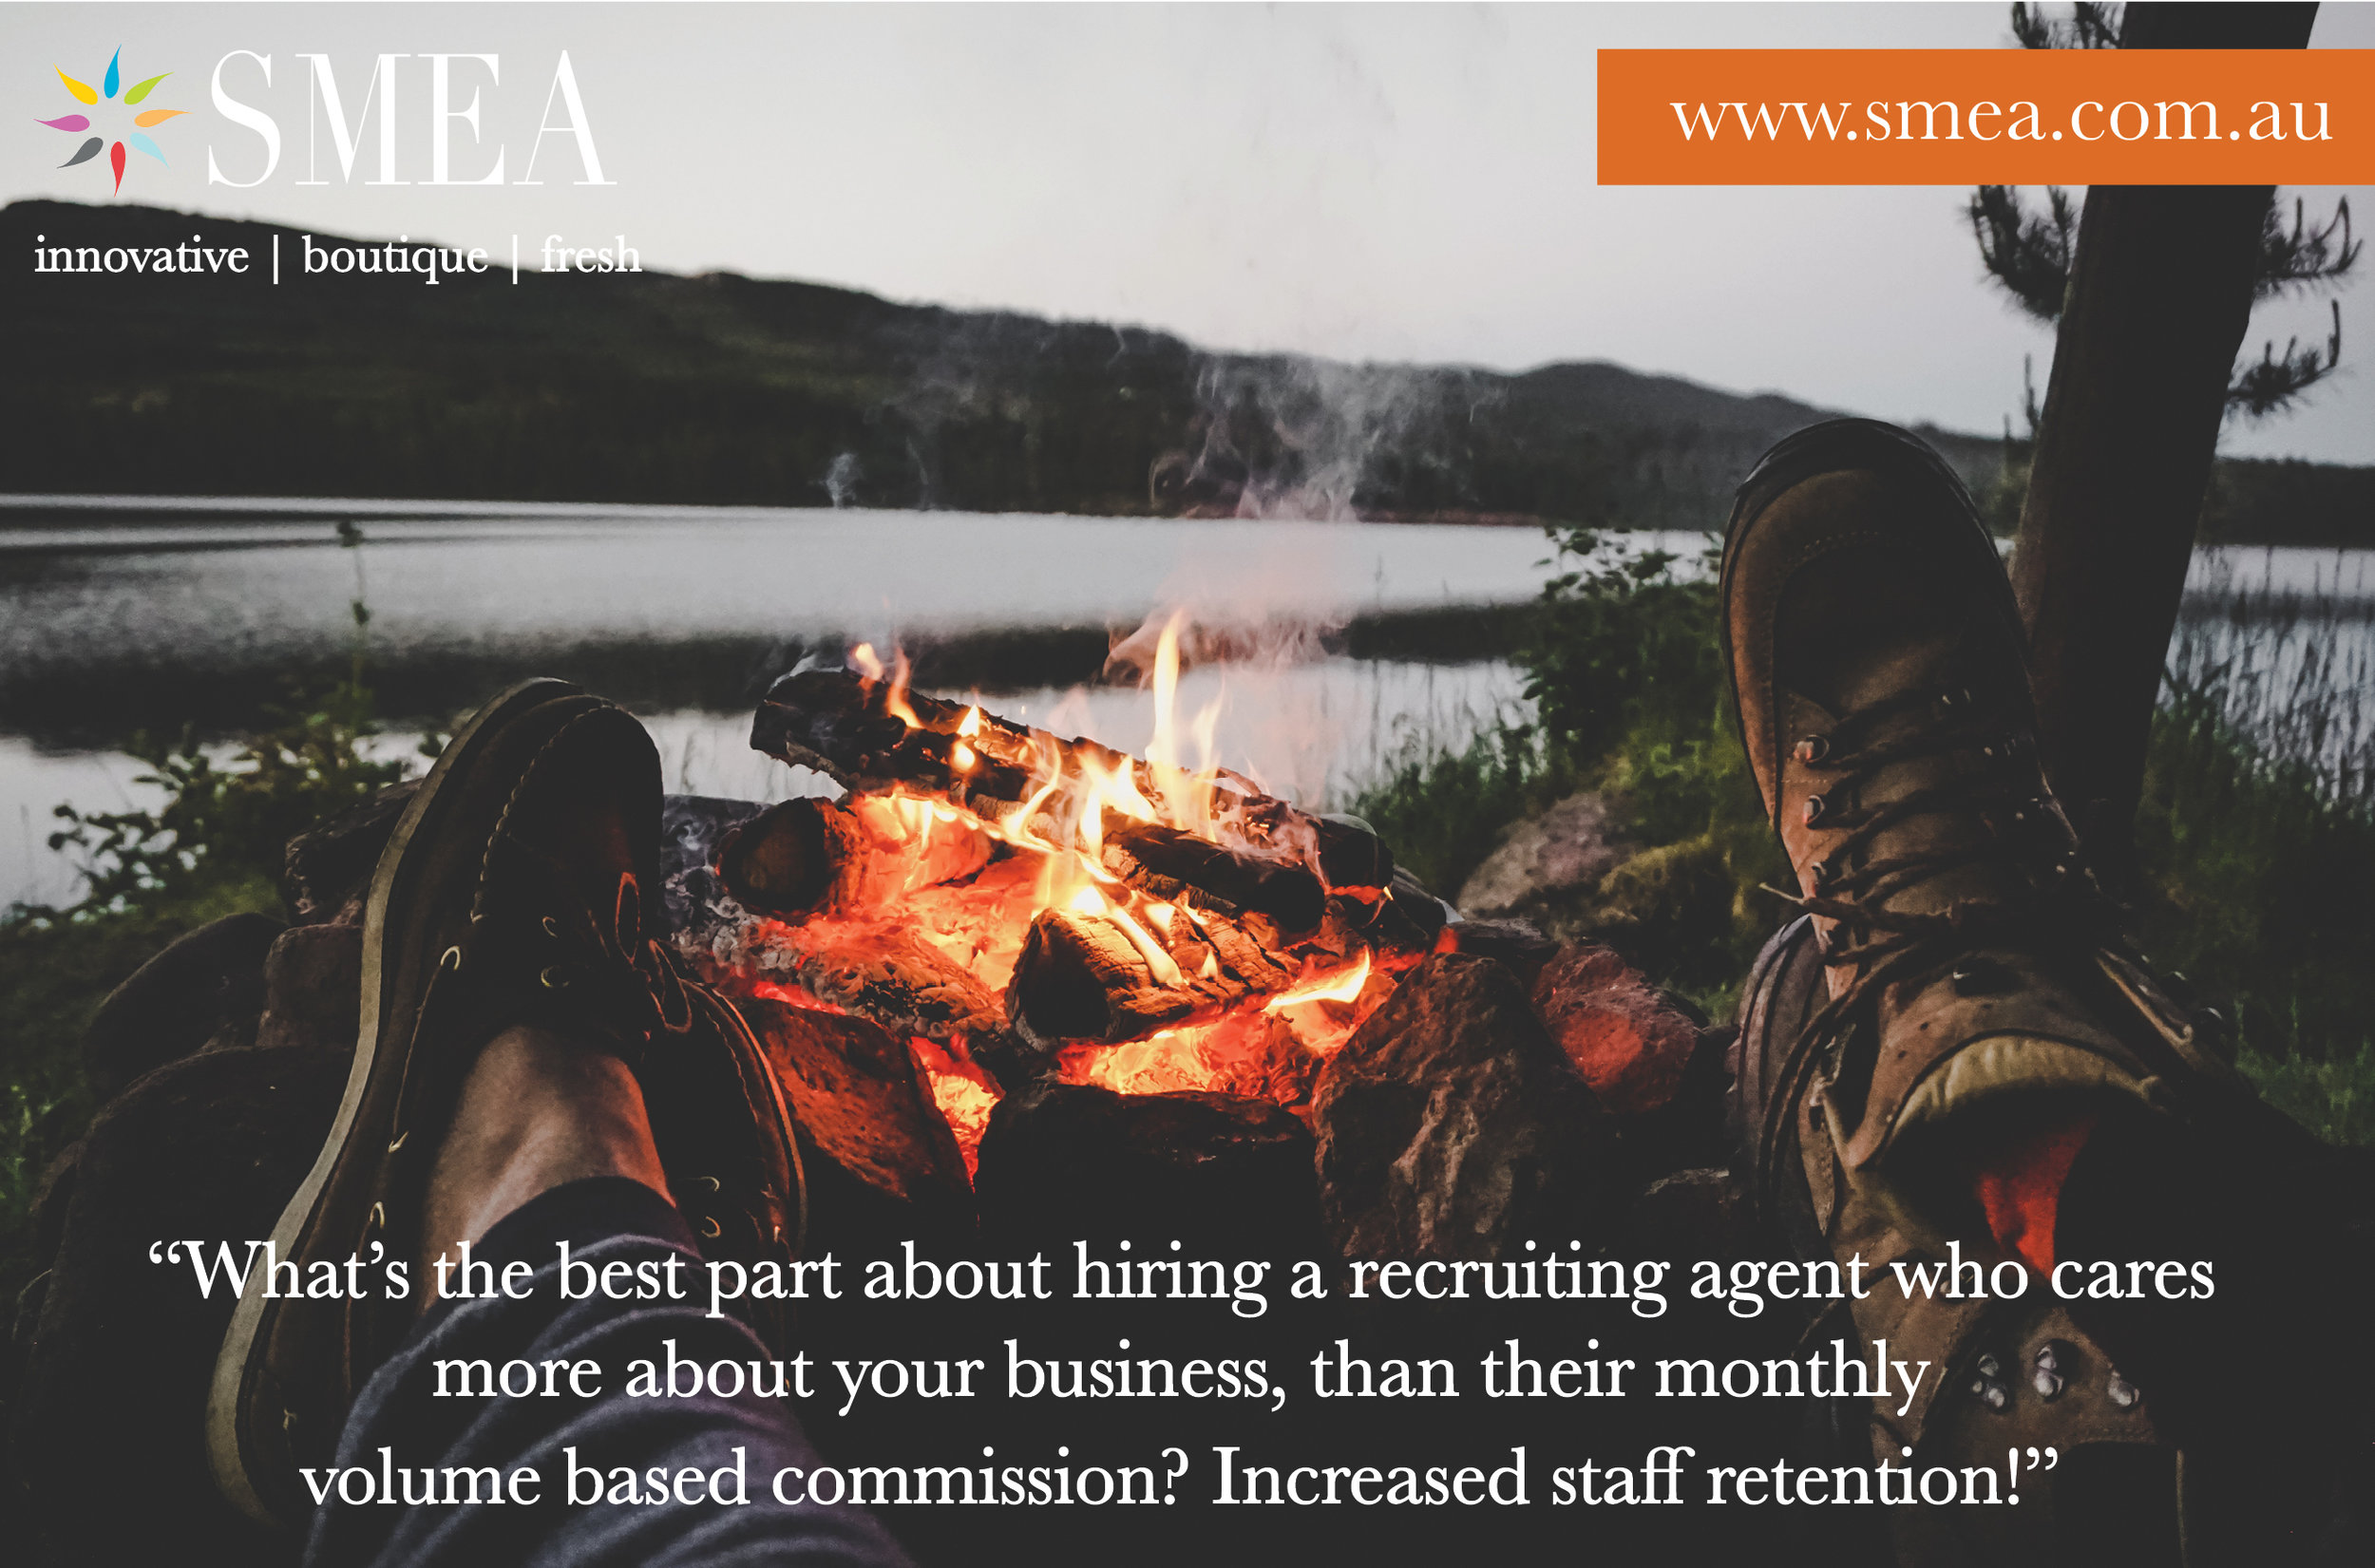 It all relates to staff retention  - Staff retention is a real concern for many SMES but it all starts with recruitment. The modern recruitment process is not geared toward supporting your staff retention strategy because it's all about numbers, KPIs and agents securing monthly bonuses.